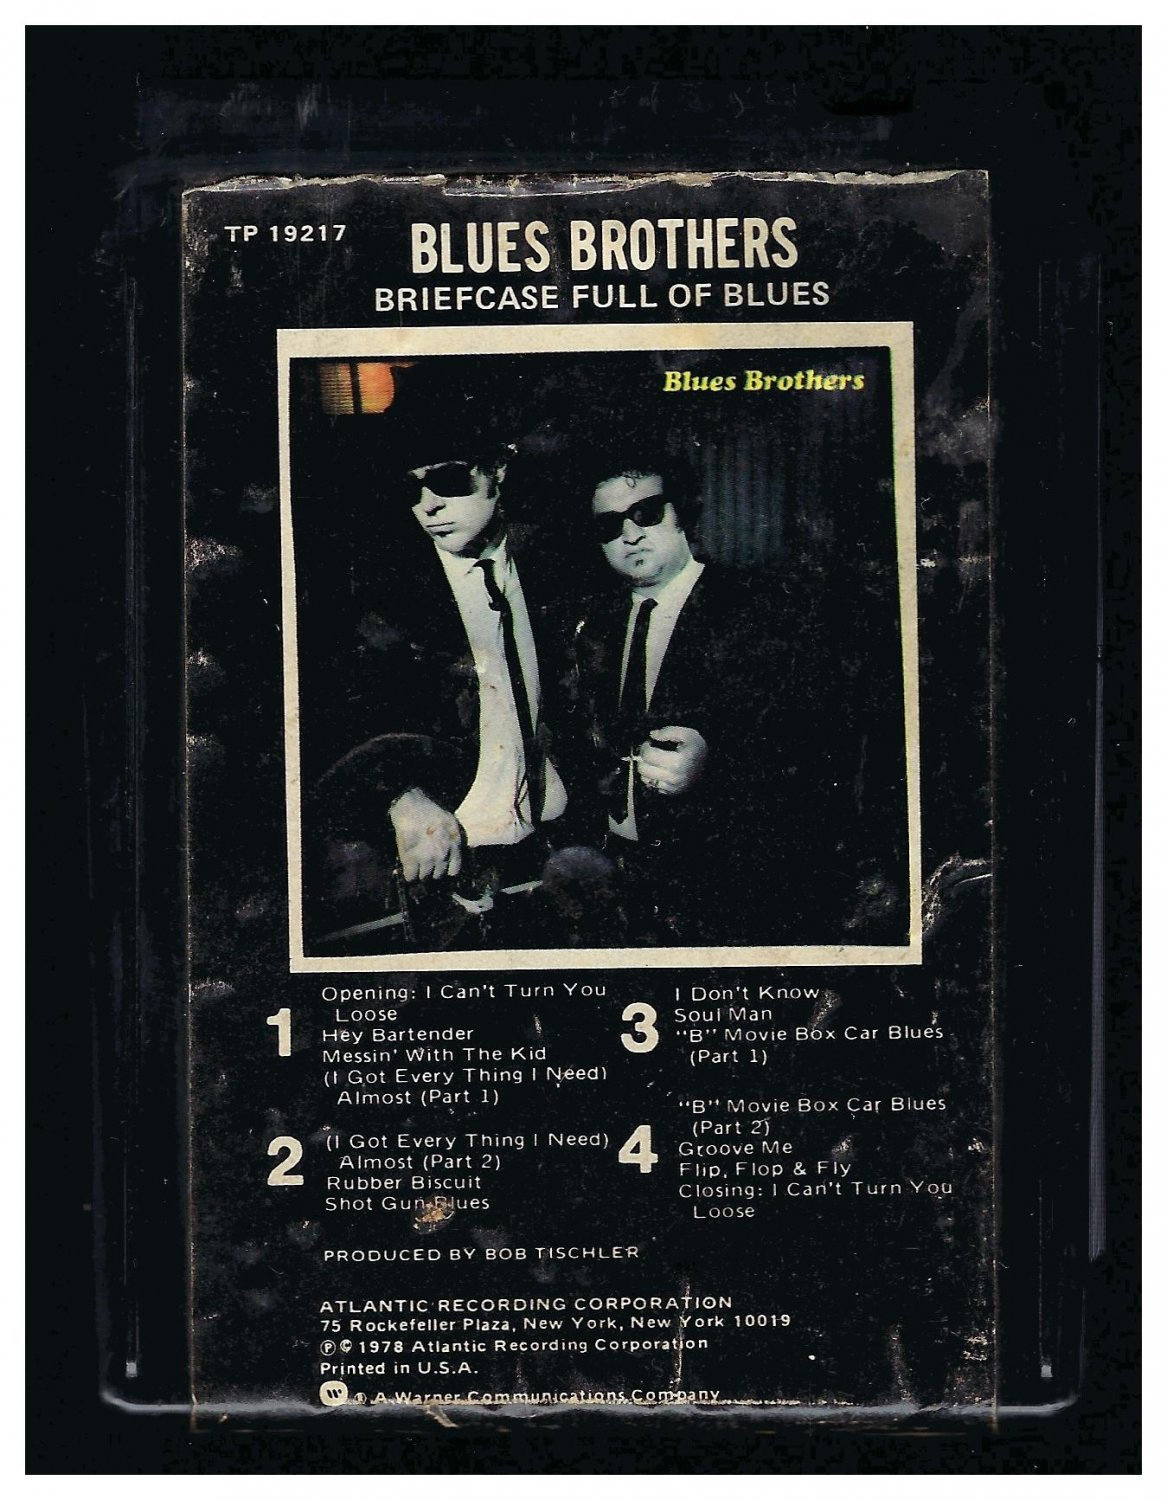 blues brothers briefcase full of blues photo - 1